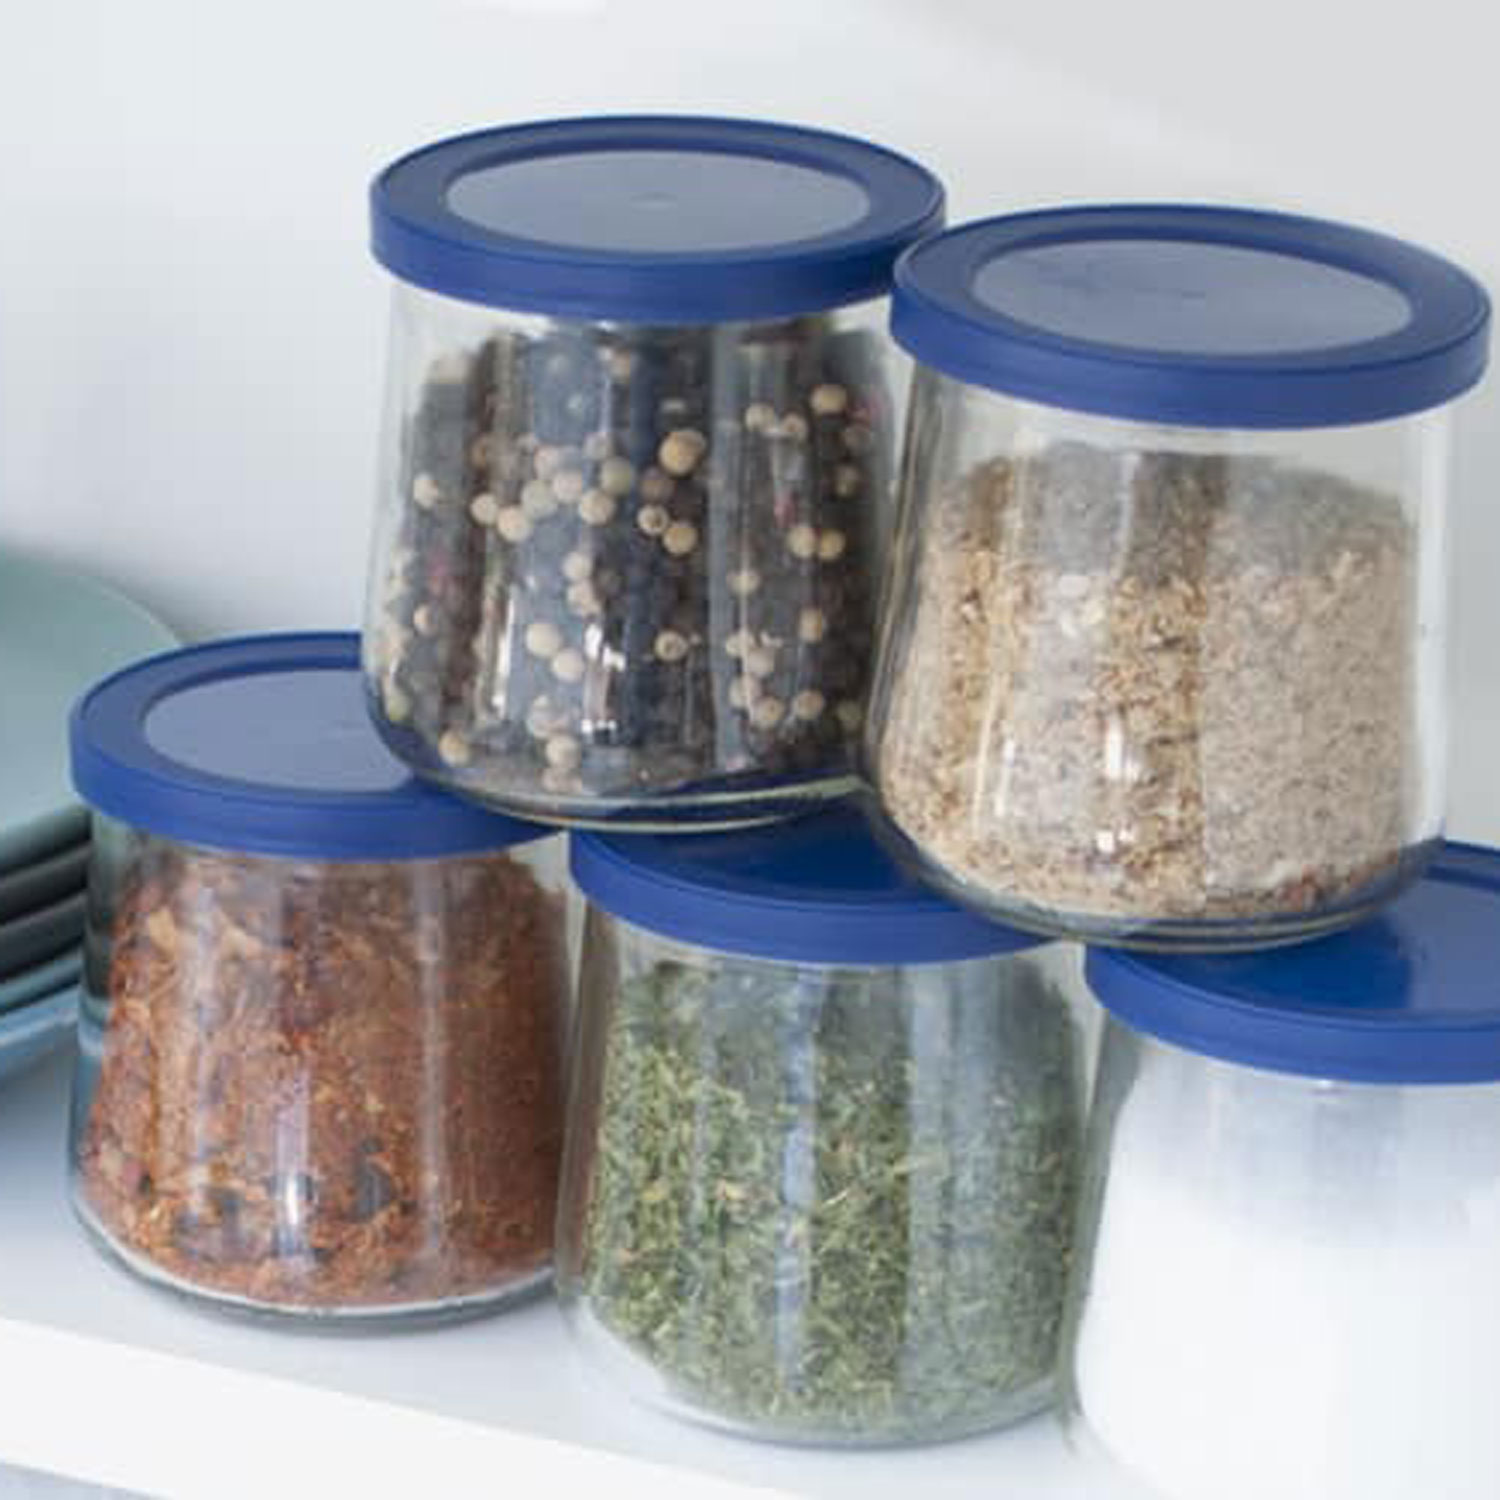 Turn Your Oui Yogurt Jars Into Storage Containers With These Reusable Lids Eatingwell